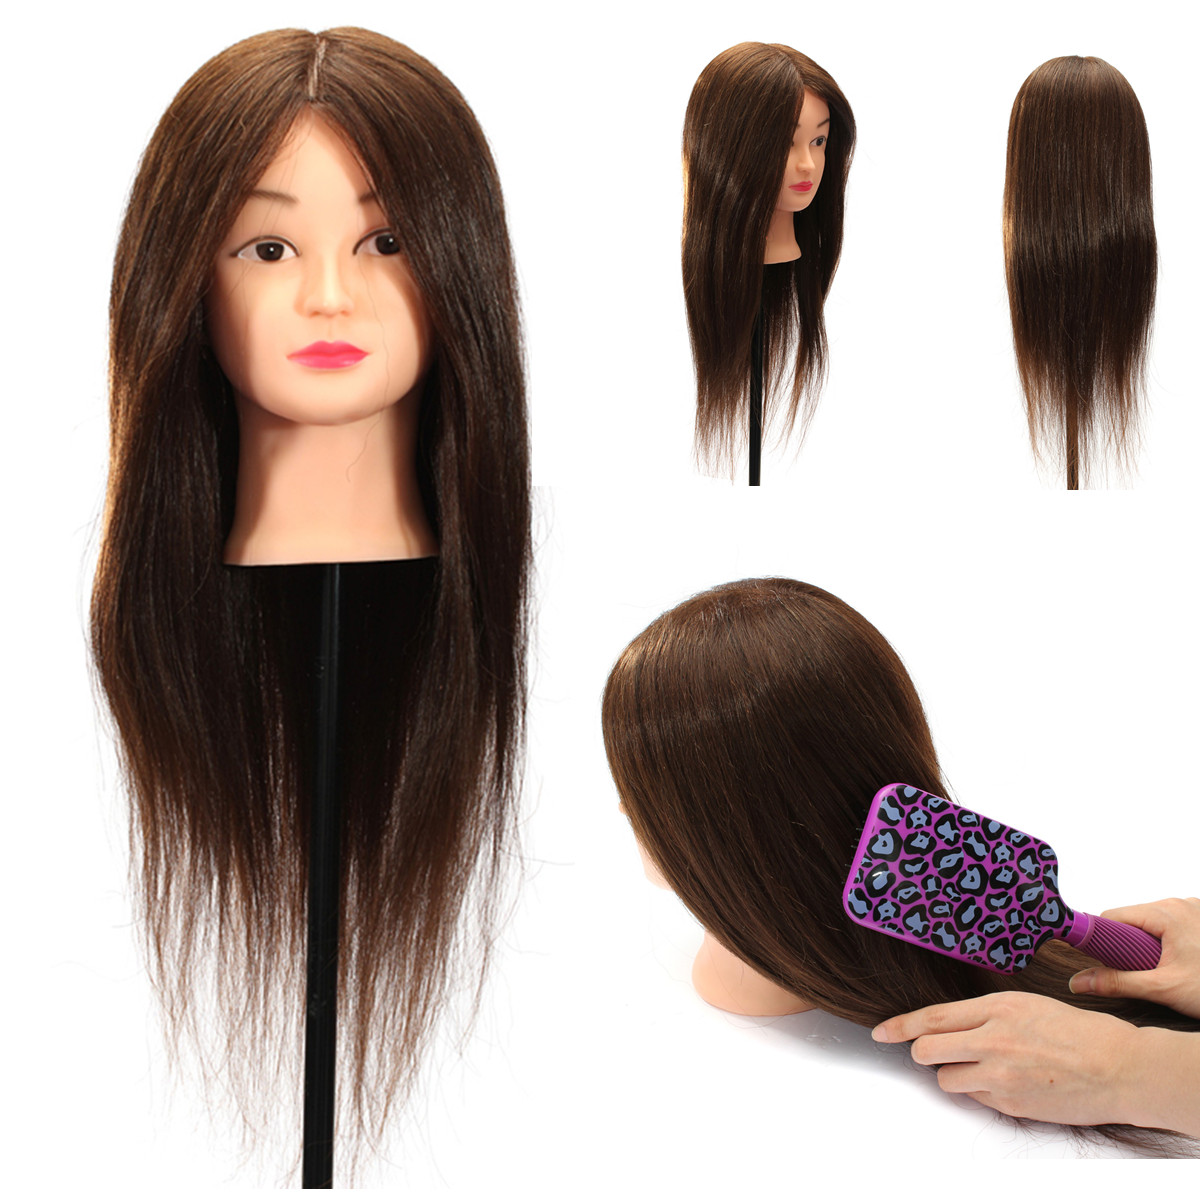 100 Real Human Hair Practice Head Training Mannequin